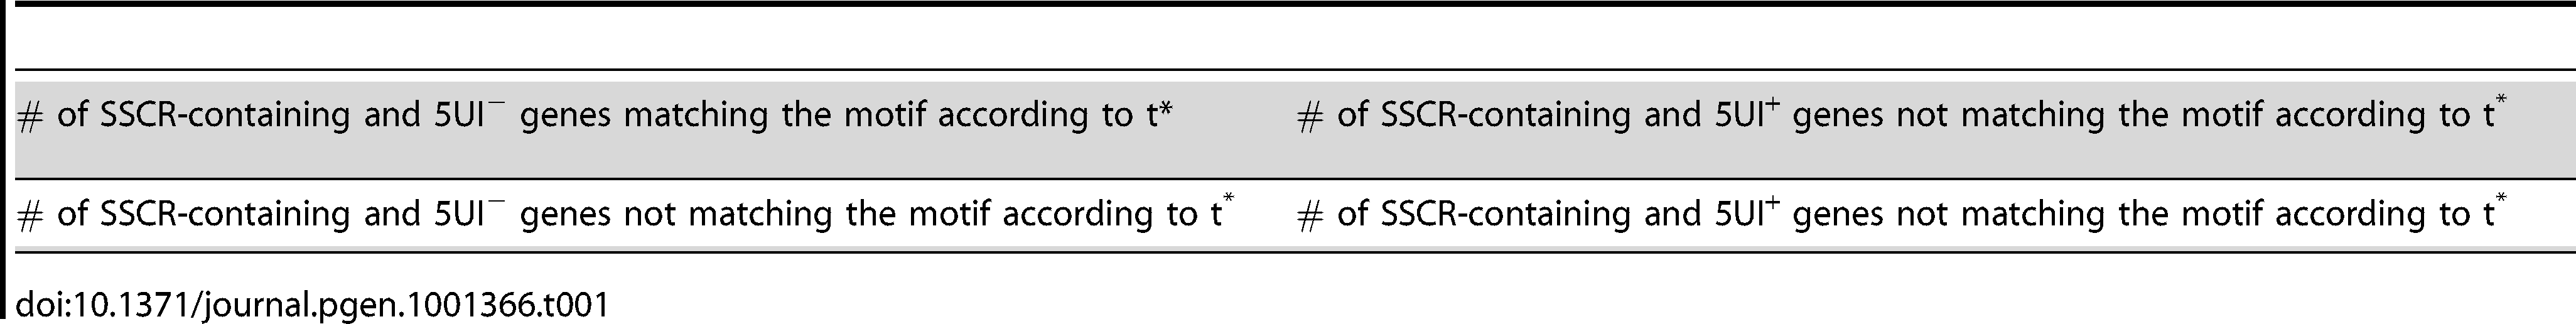 2×2 Contingency Table to determine PSSM threshold t*.